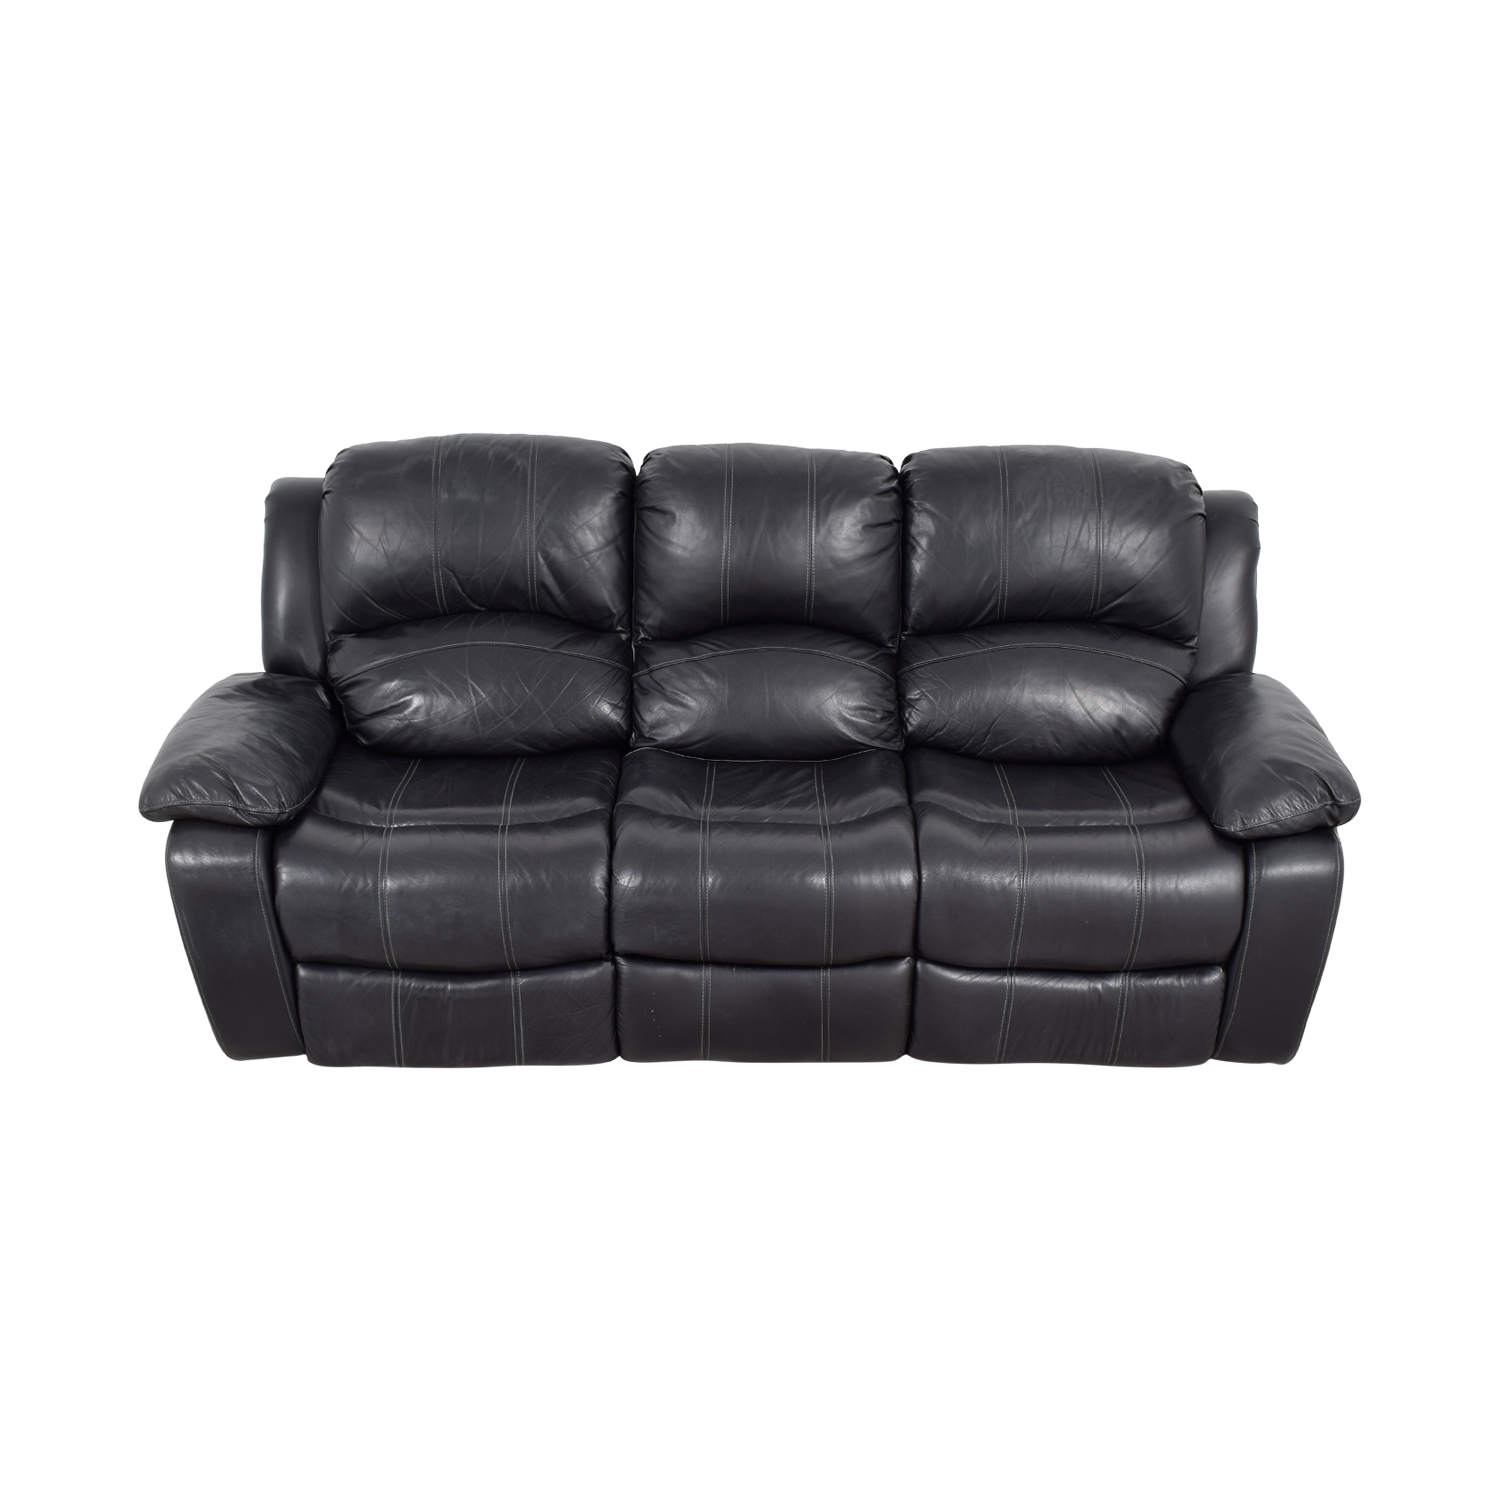 Sofas For Sale Online: Sofas: Used Sofas For Sale